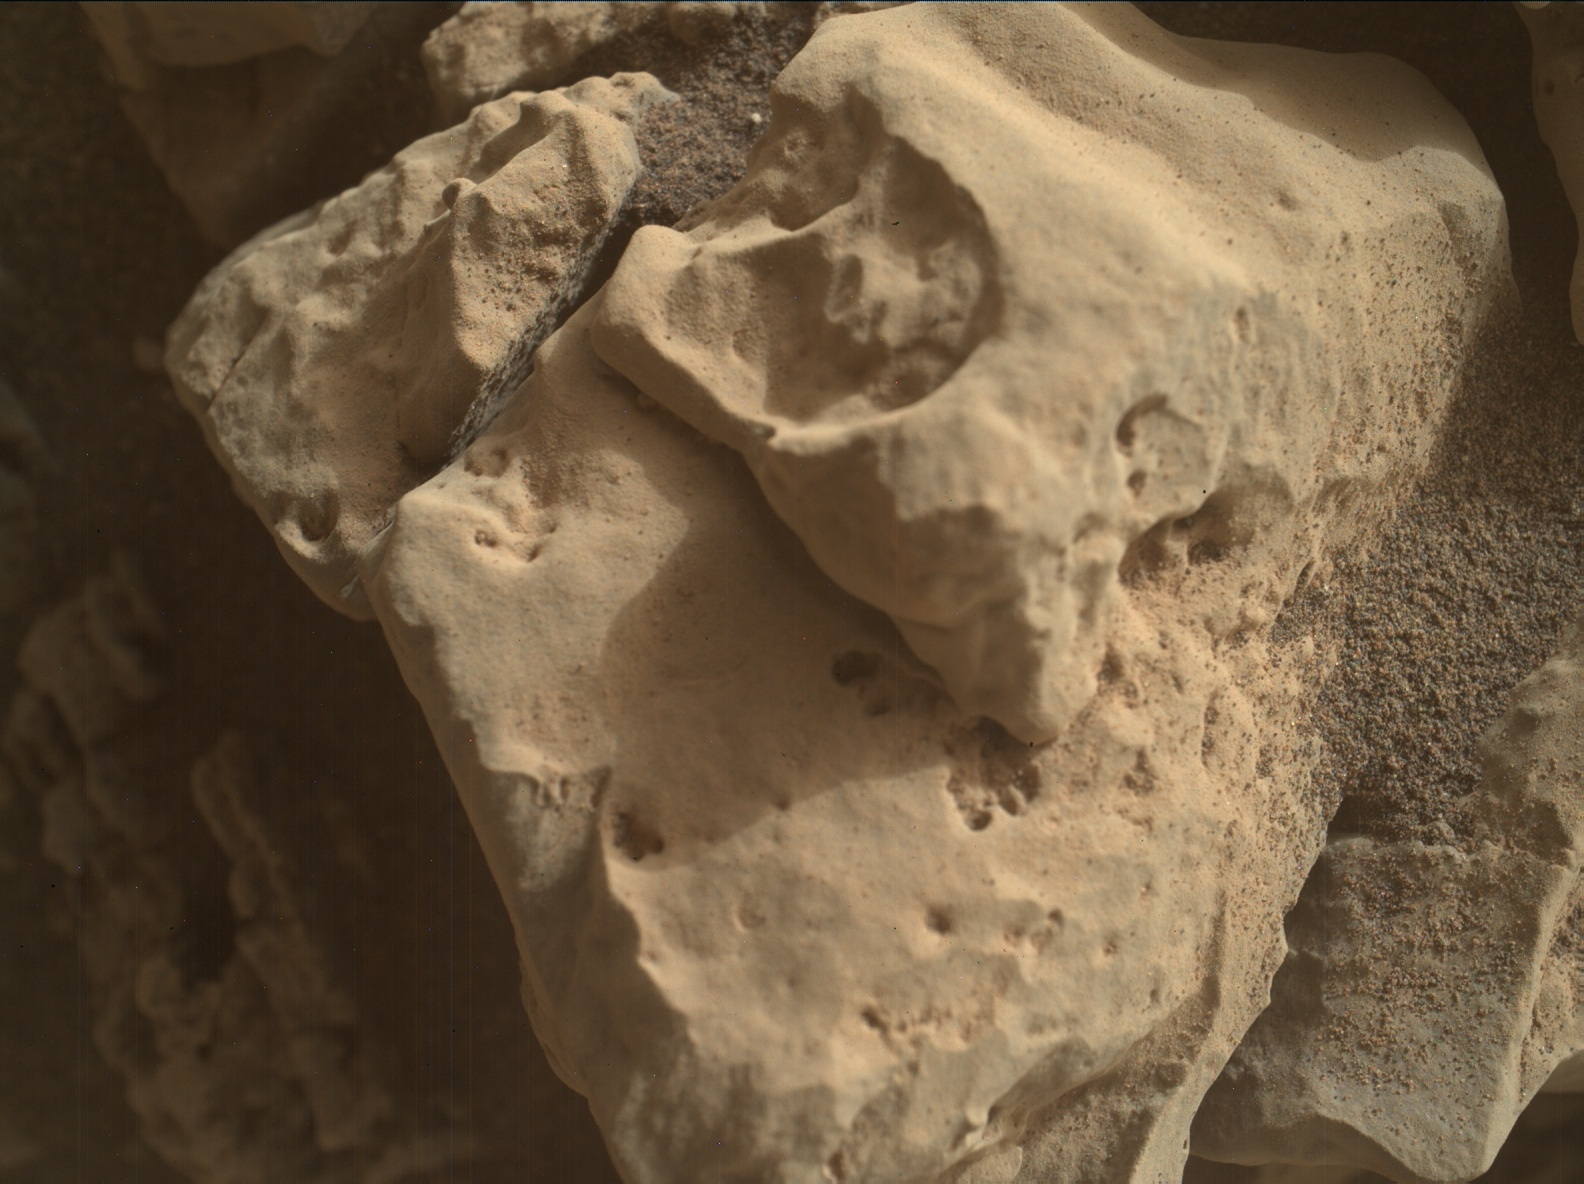 Nasa's Mars rover Curiosity acquired this image using its Mars Hand Lens Imager (MAHLI) on Sol 2690